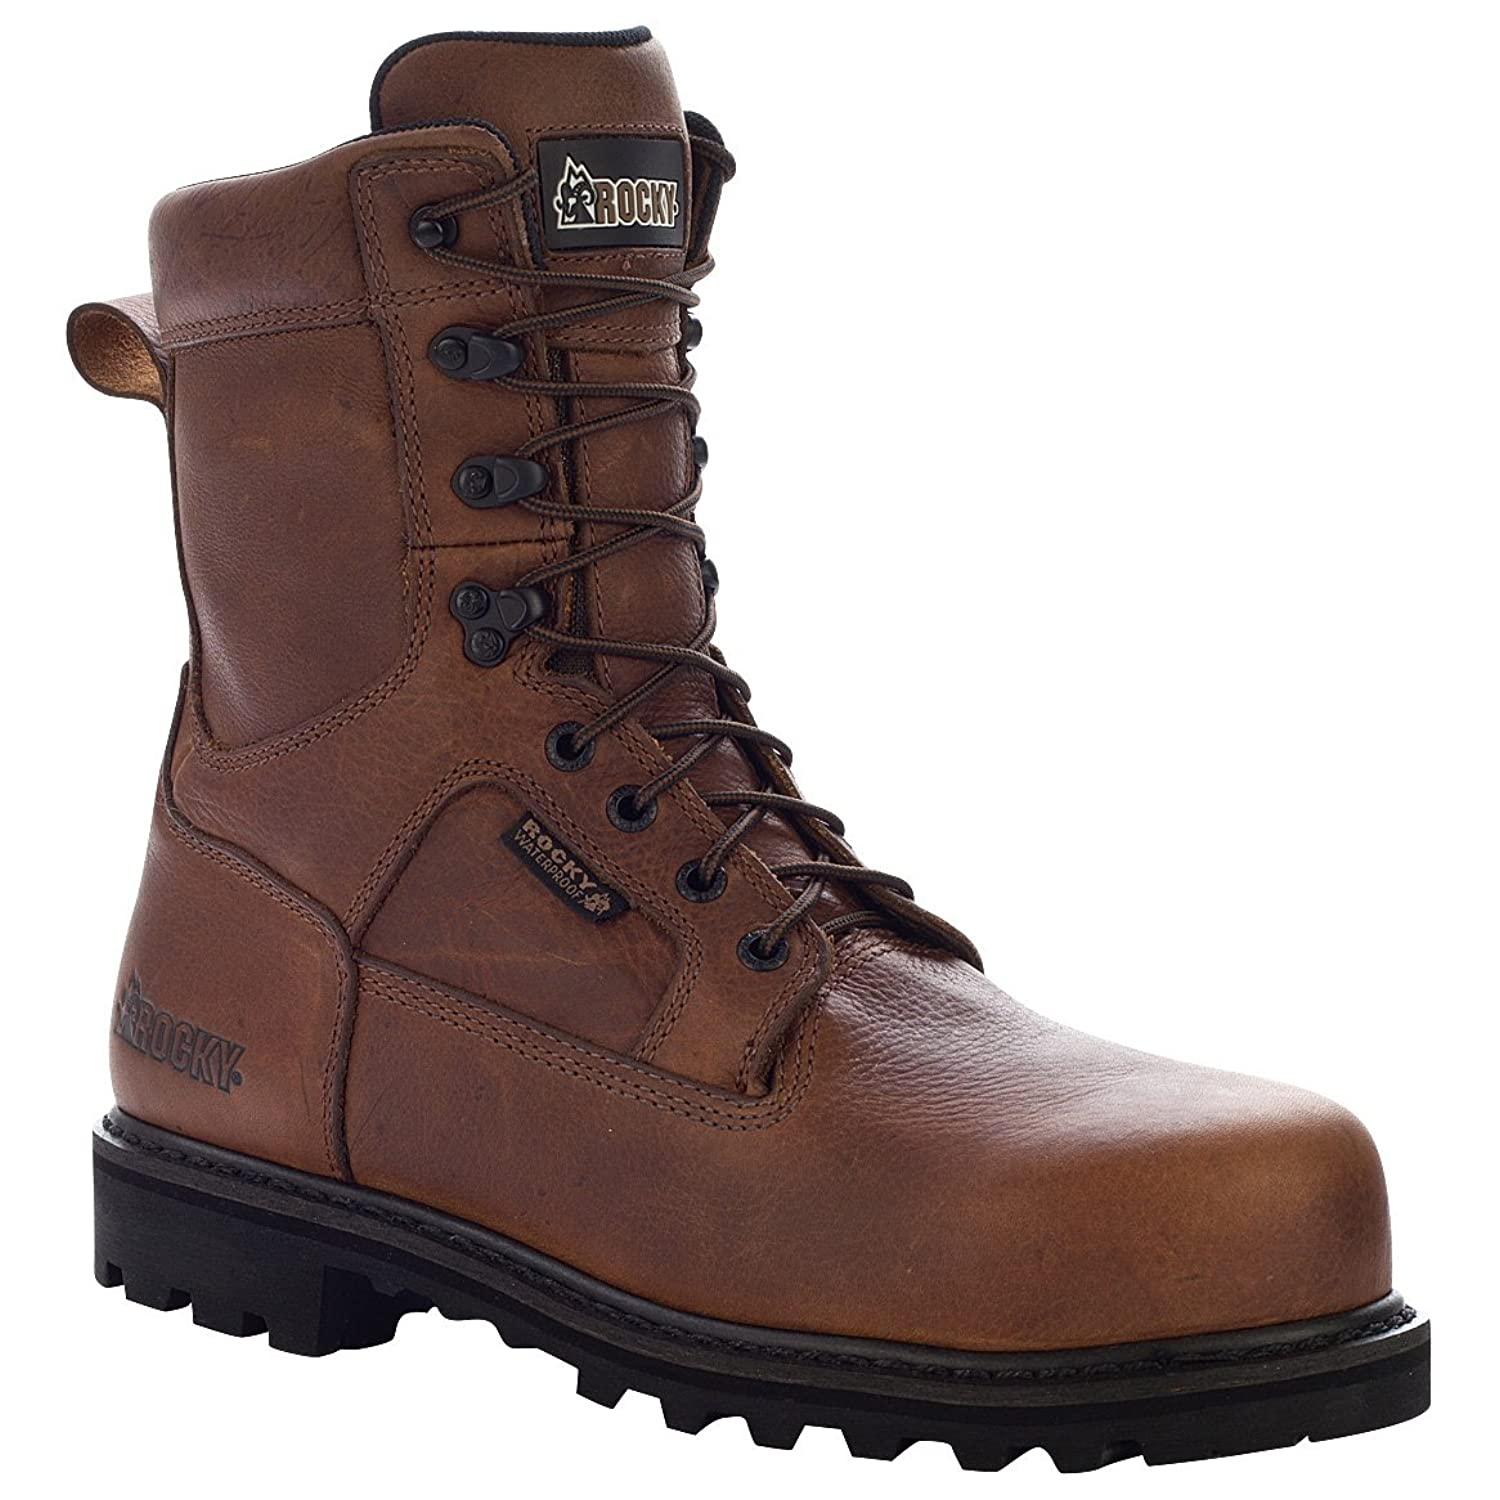 6988 Rocky Men's Exertion WP Safety Boots - Brown